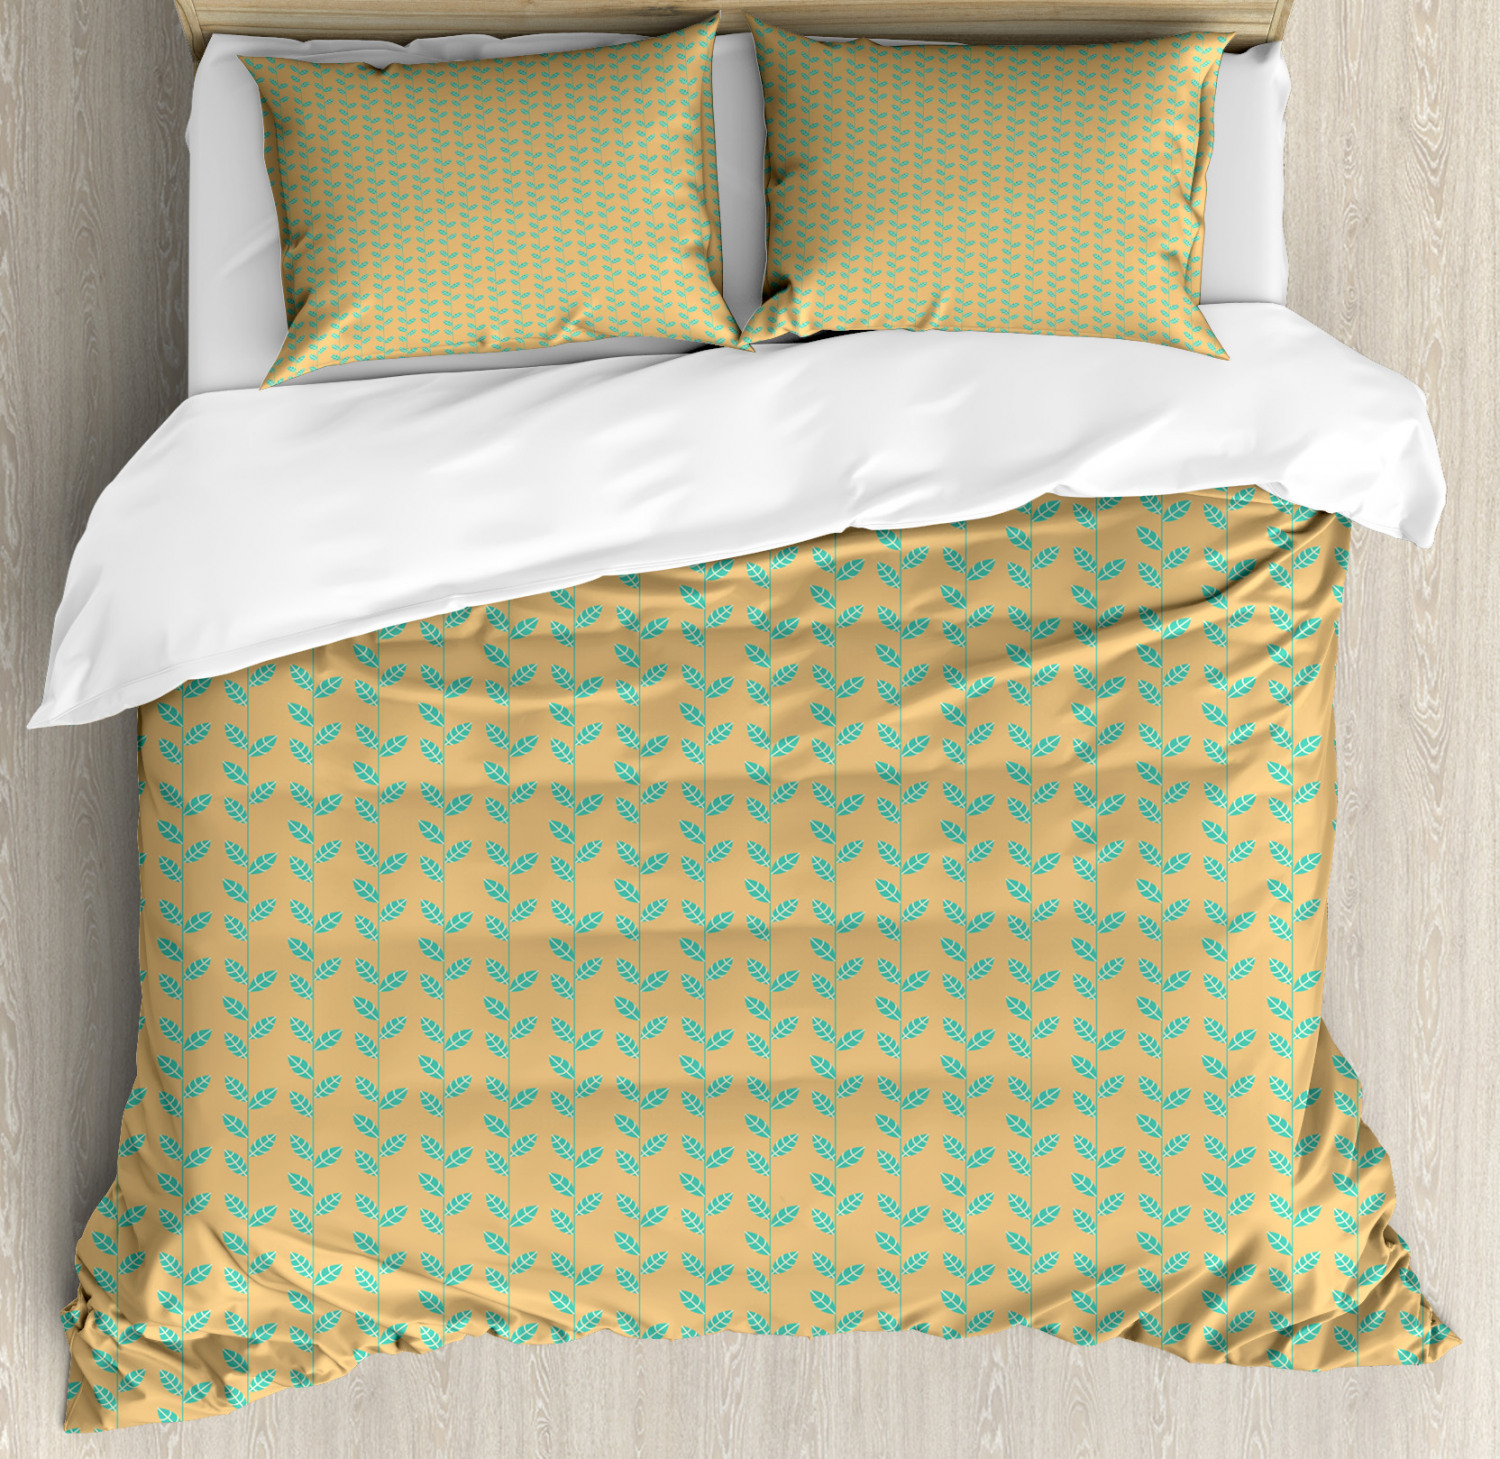 Nature Duvet Cover Set with Pillow Shams Lines with Spring Leaves Print